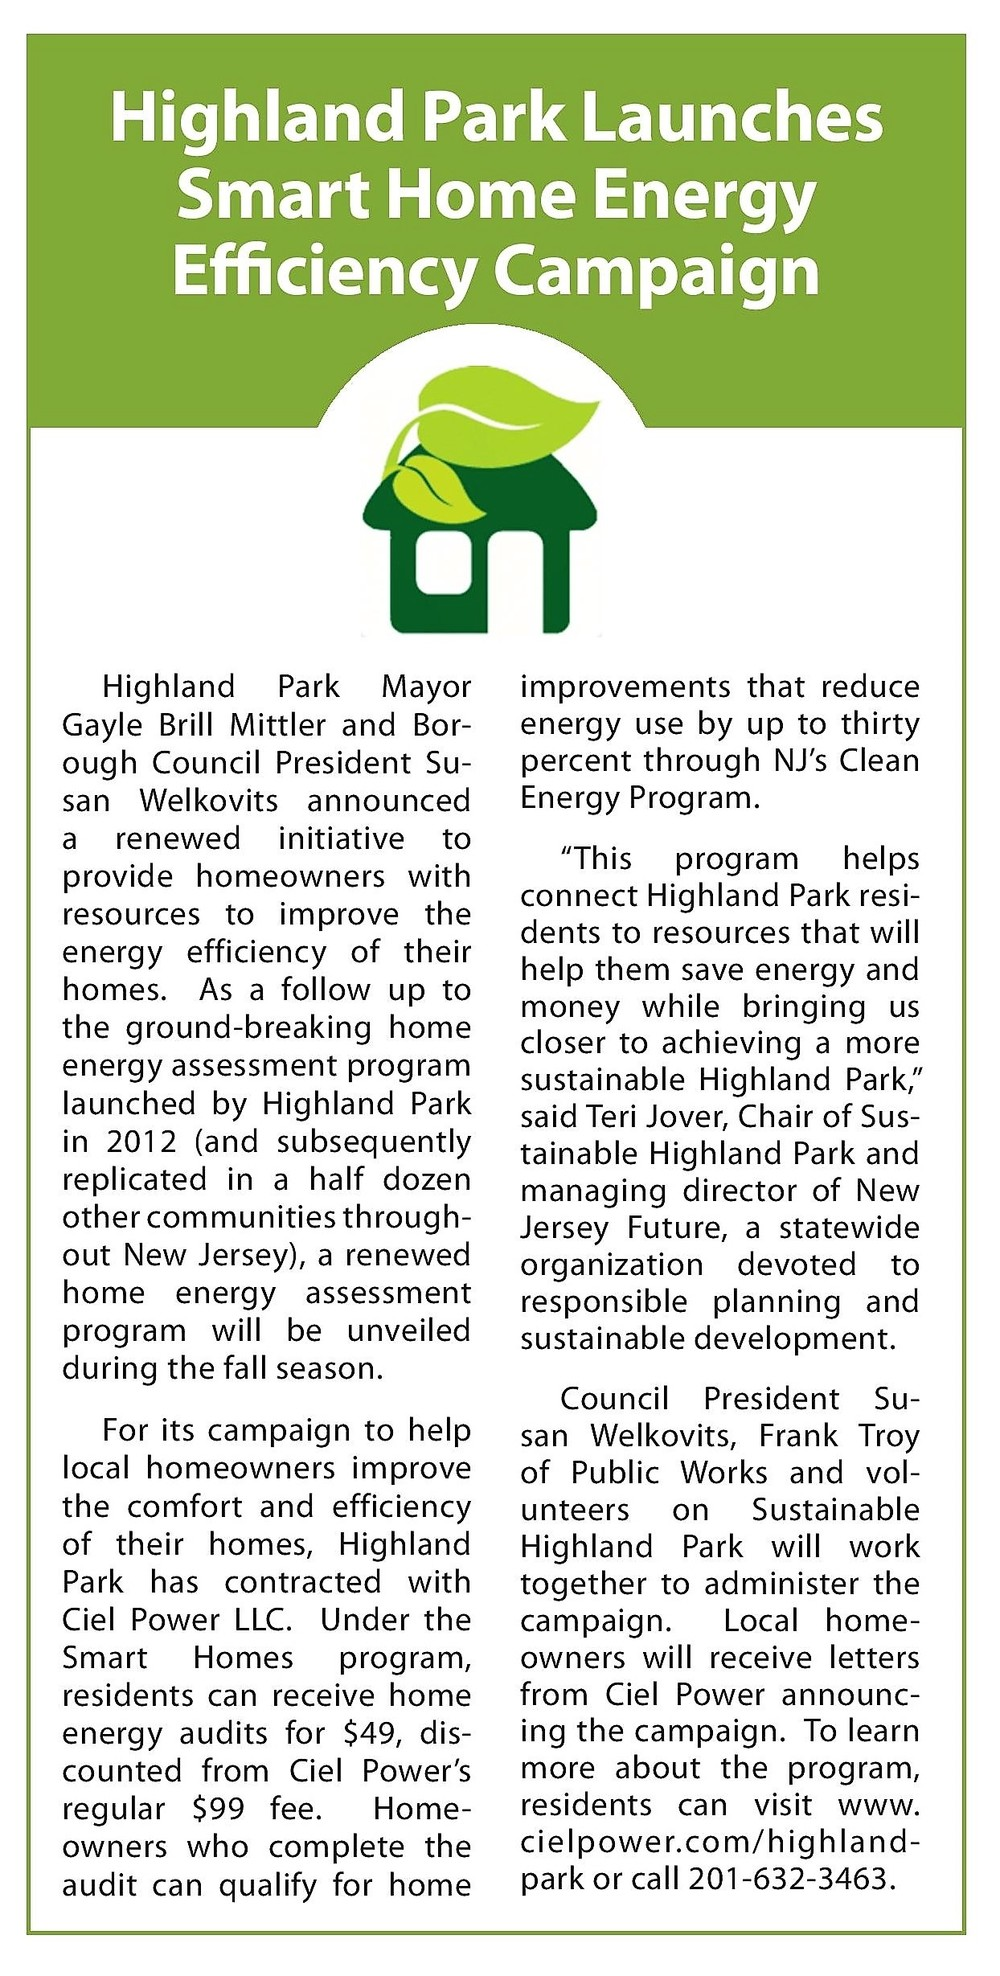 Highland Park's Smart Home Energy Efficiency home energy audit campaign kick off is featured in the Highland Park News